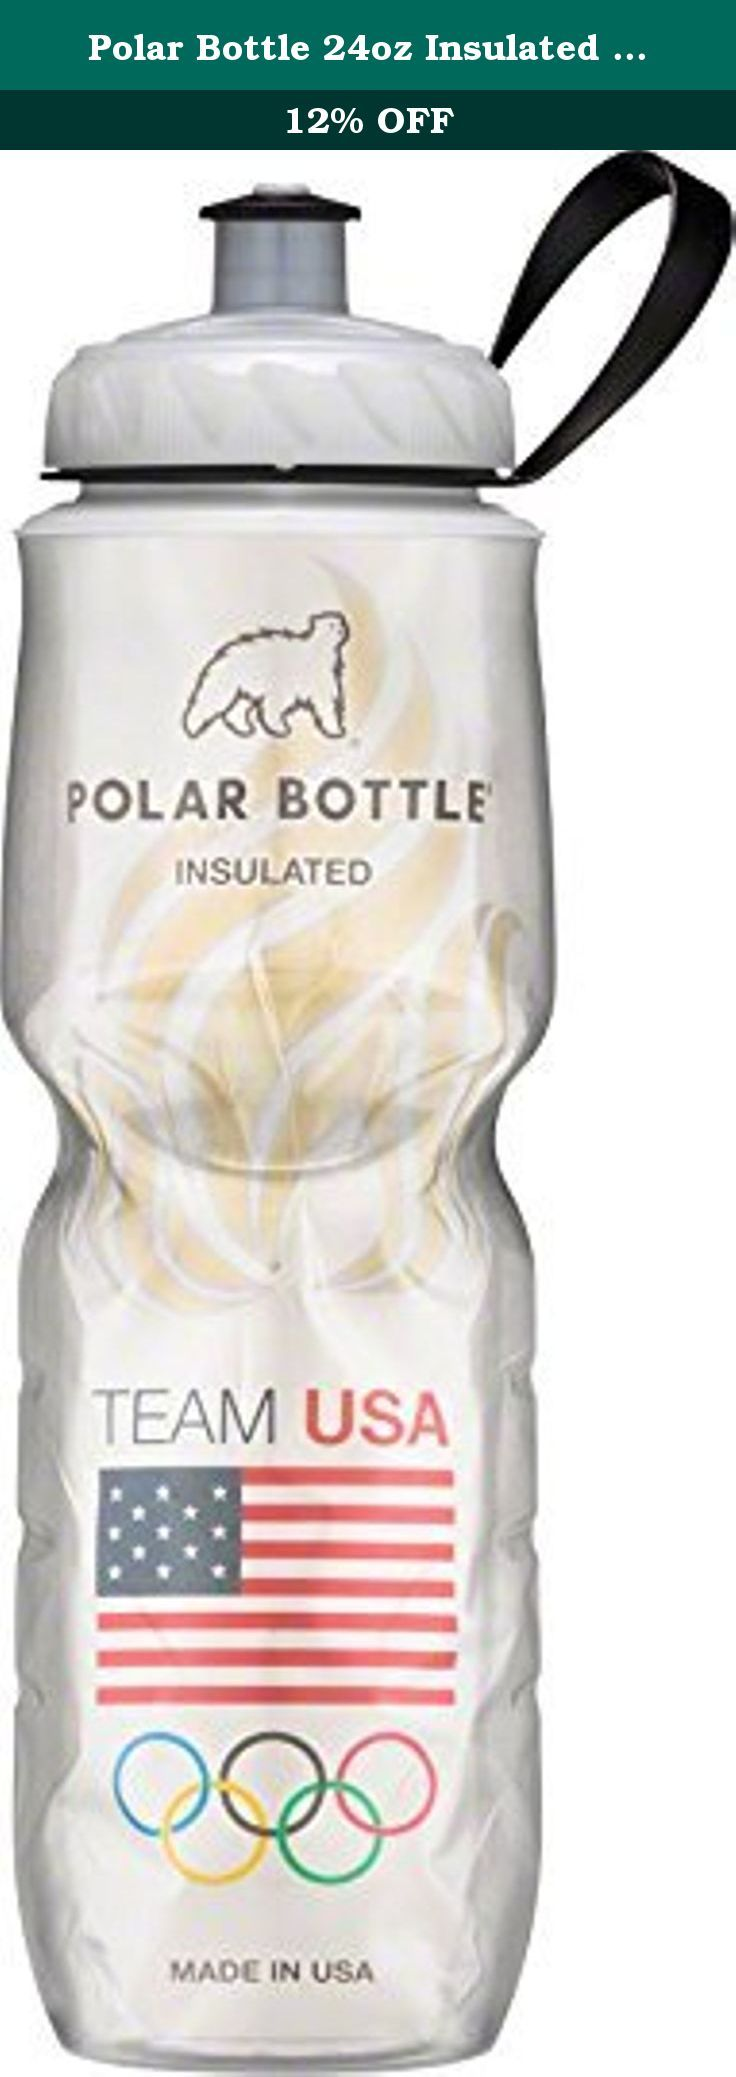 Polar Bottle 24oz Insulated Water Bottle Team USA Flame. Polar Bottle is proud to be an official water bottle licensee of the United States Olympic and Paralympic Teams. For every Team USA Polar Bottle sold, a portion of the proceeds goes to support Olympic and Paralympic athletes across the United States. So go ahead, live your dream and do your part to help light the way for Team USA. Available online only in the United States. The patented Polar Bottle water bottle features an…